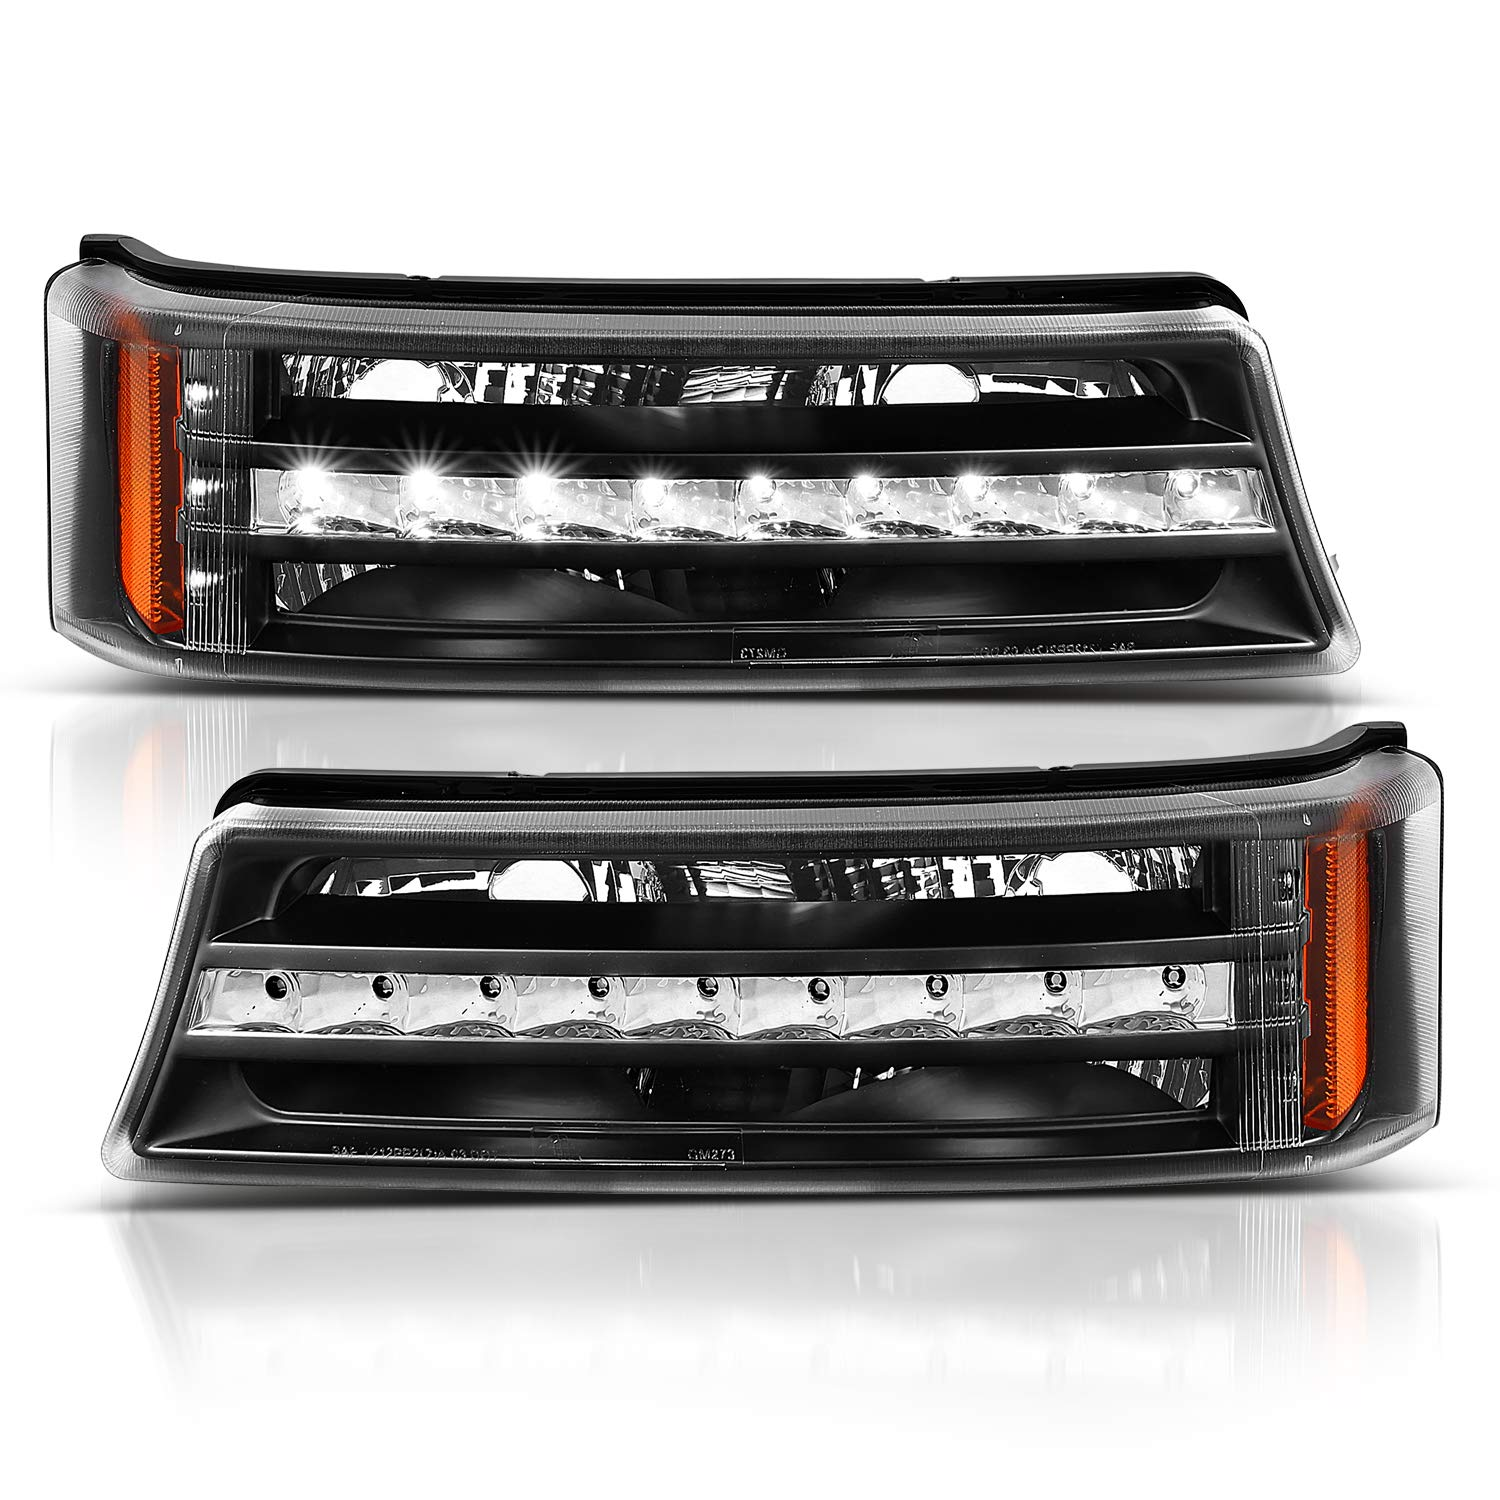 AmeriLite Black LED Parking Lights Replacement Set for Chevy Silverado Avalanche Passenger and Driver Side